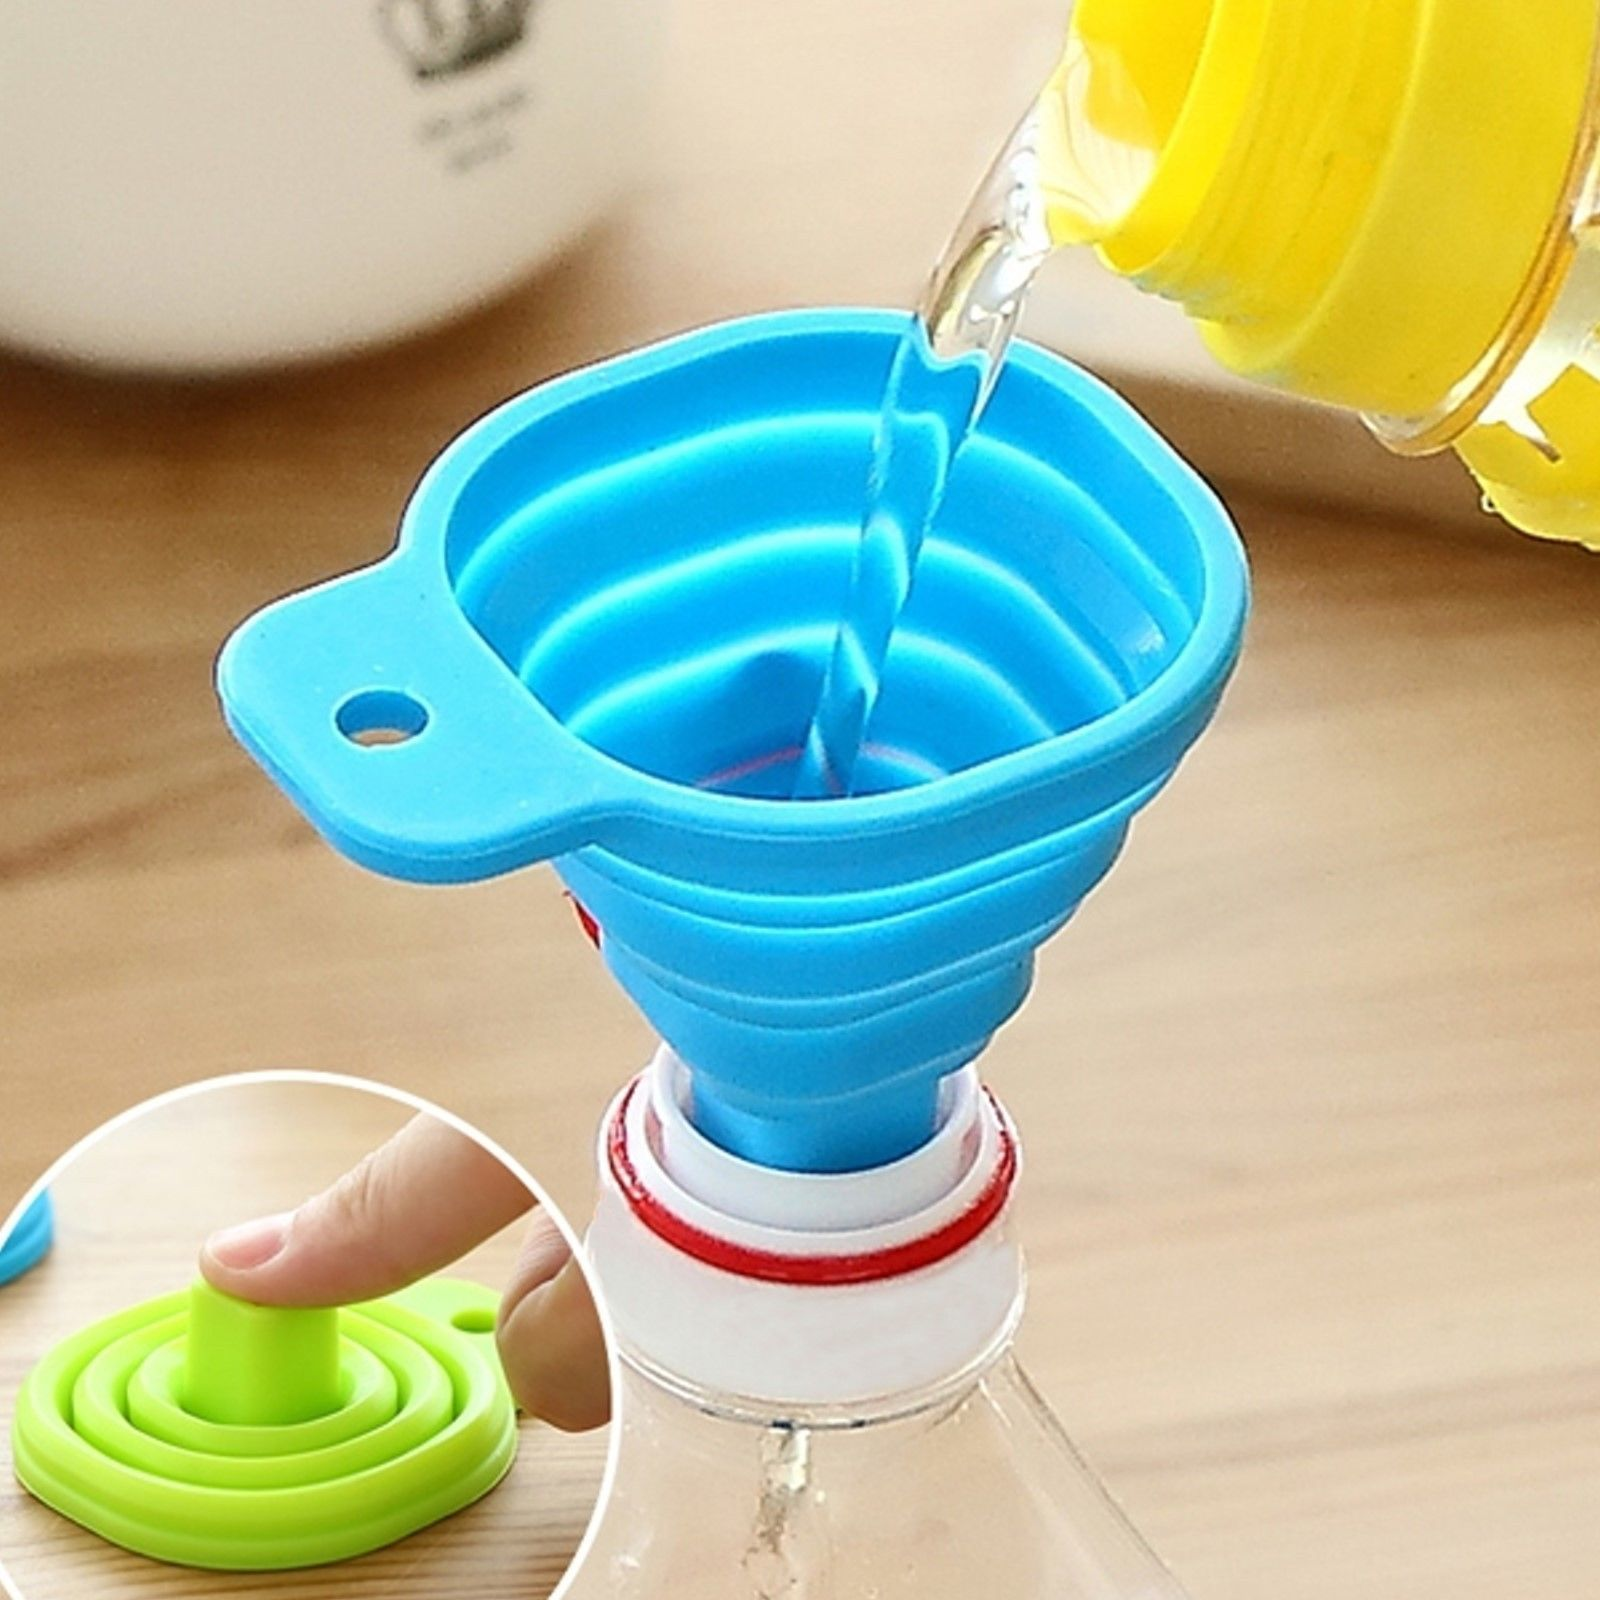 Space Saving Collapsible Mini Silicone Filling Funnel Kitchen Tools ...